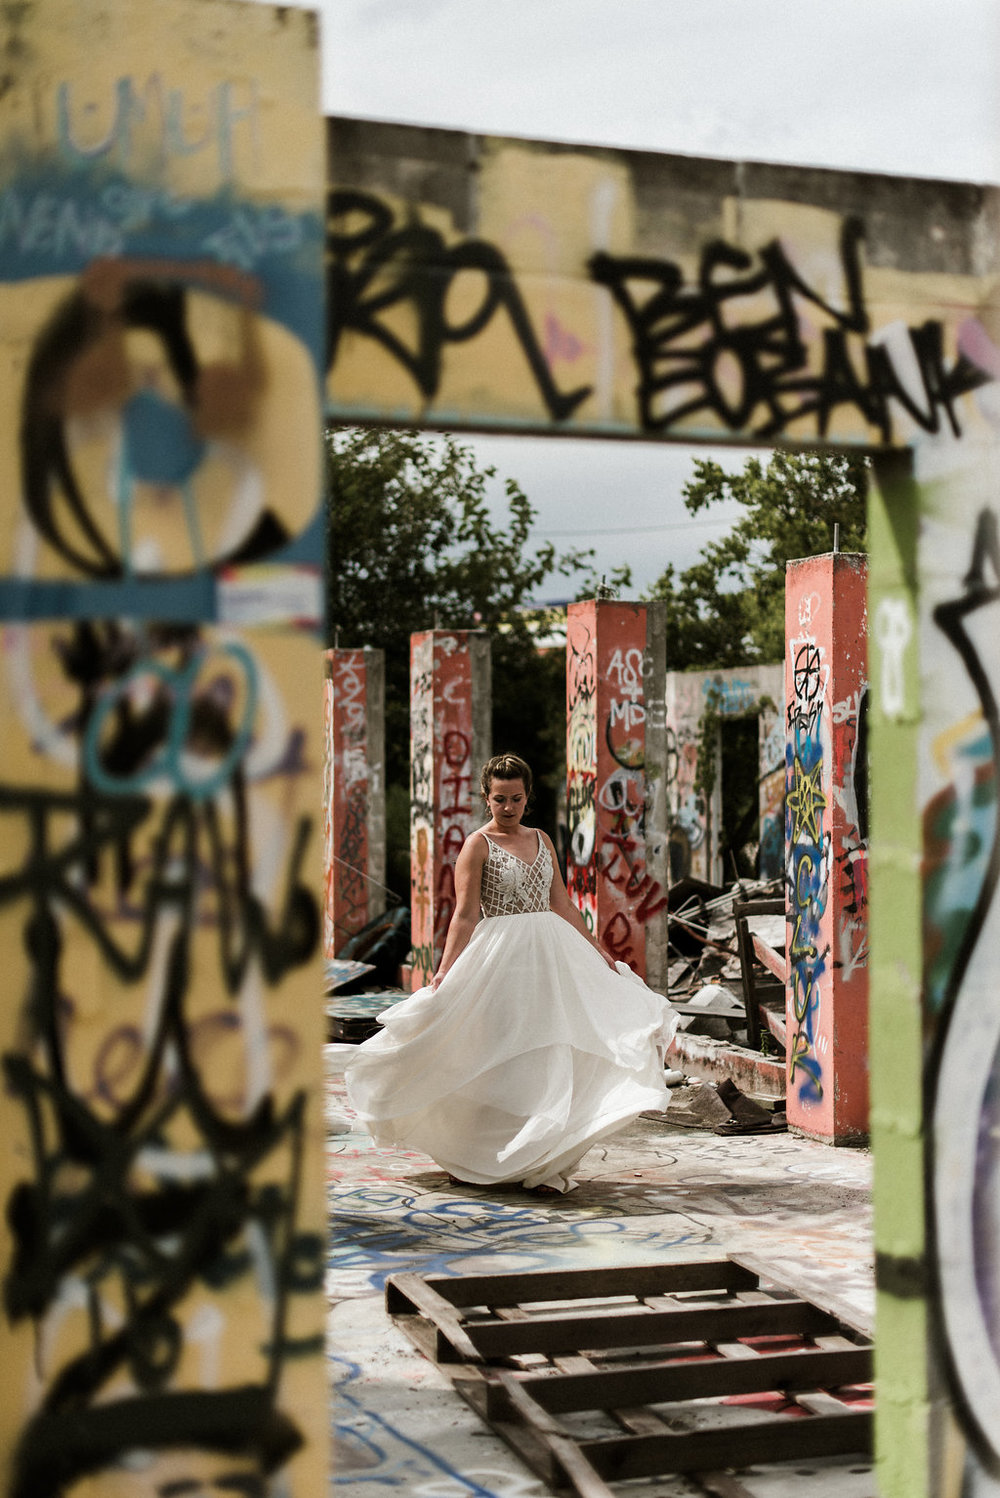 Savannah-Stonehenge-lauren-imus-photography-savannah-wedding-photographer-blush-by-hayley-paige-honeycomb-ivory-and-beau-bridal-boutique-savannah-wedding-dresses-savannah-bridal-boutique-savannah-wedding-planner-savannah-florist-graffiti-wedding-31.jpg